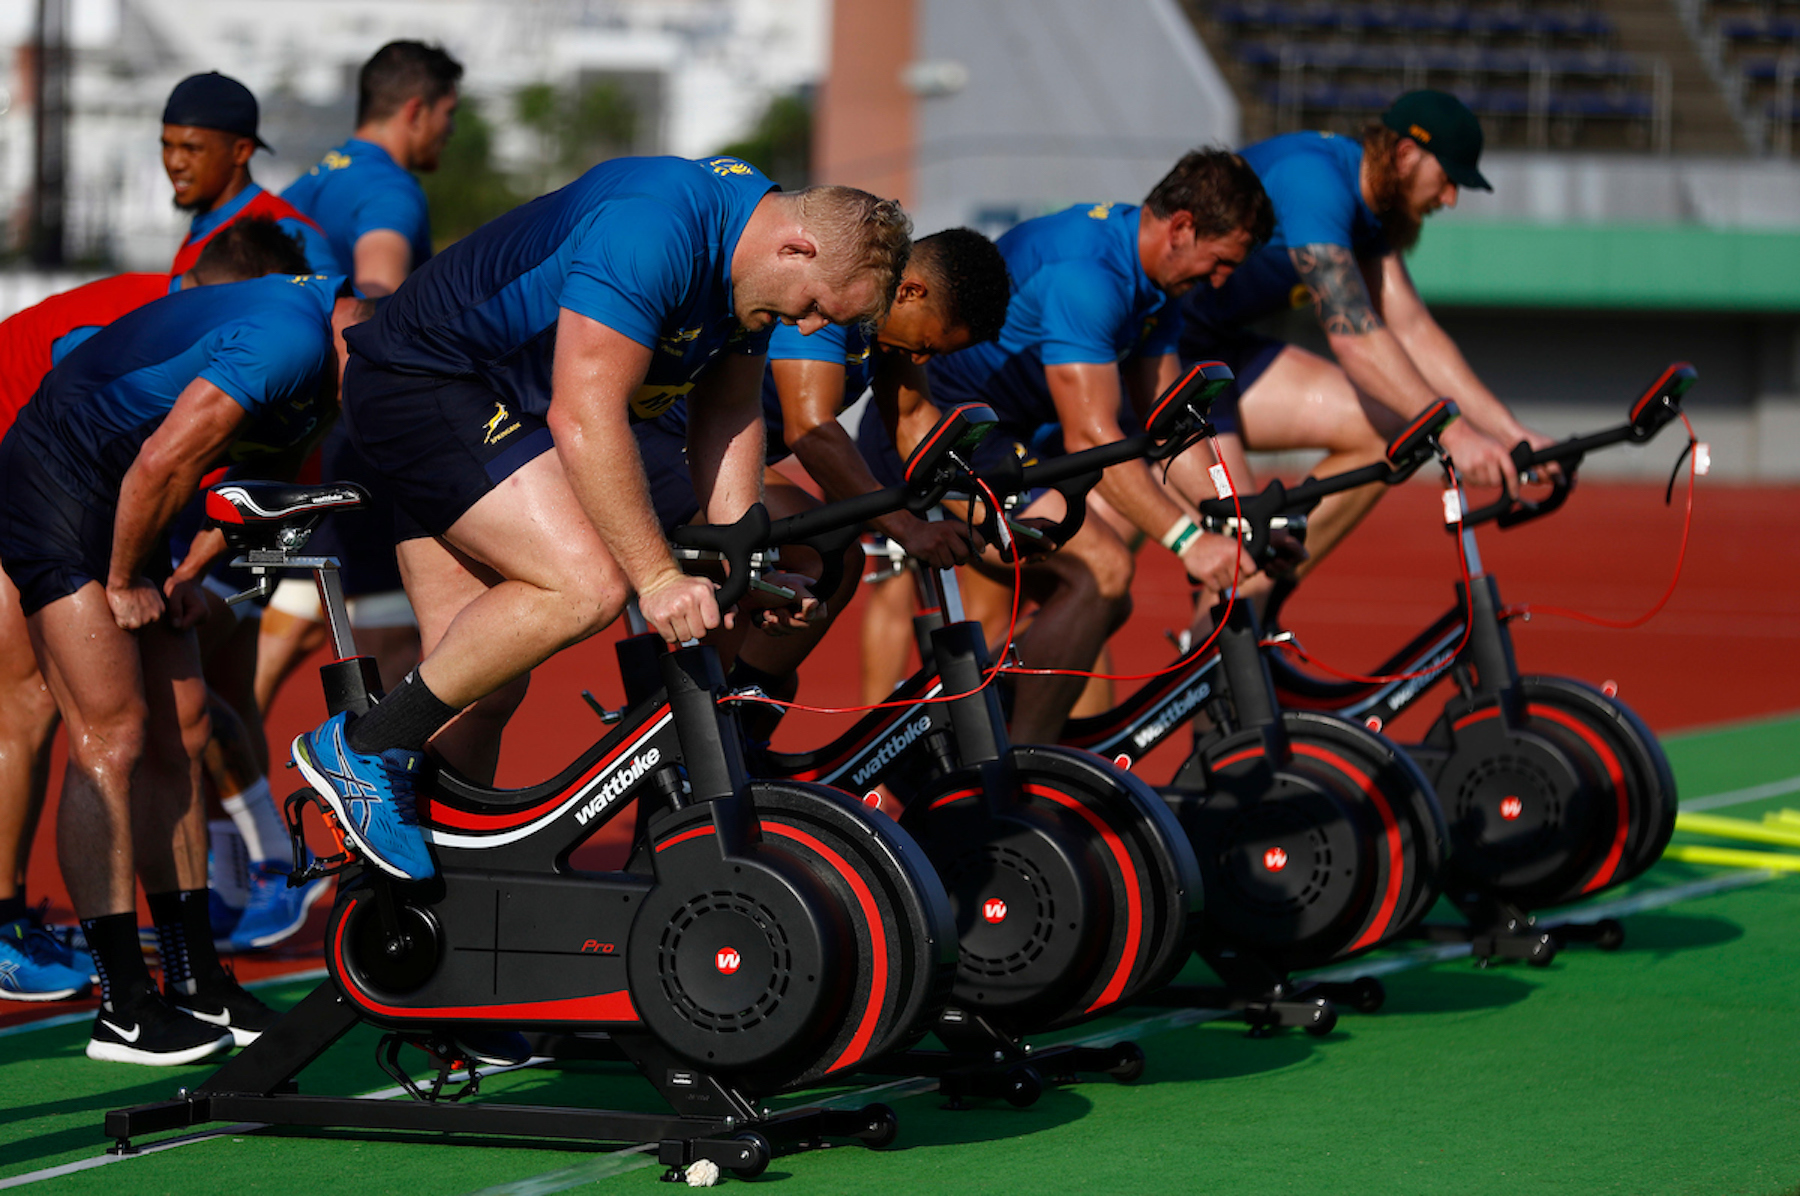 180 WATTBIKES INSTALLED ACROSS RUGBY WORLD CUP TRAINING VENUES